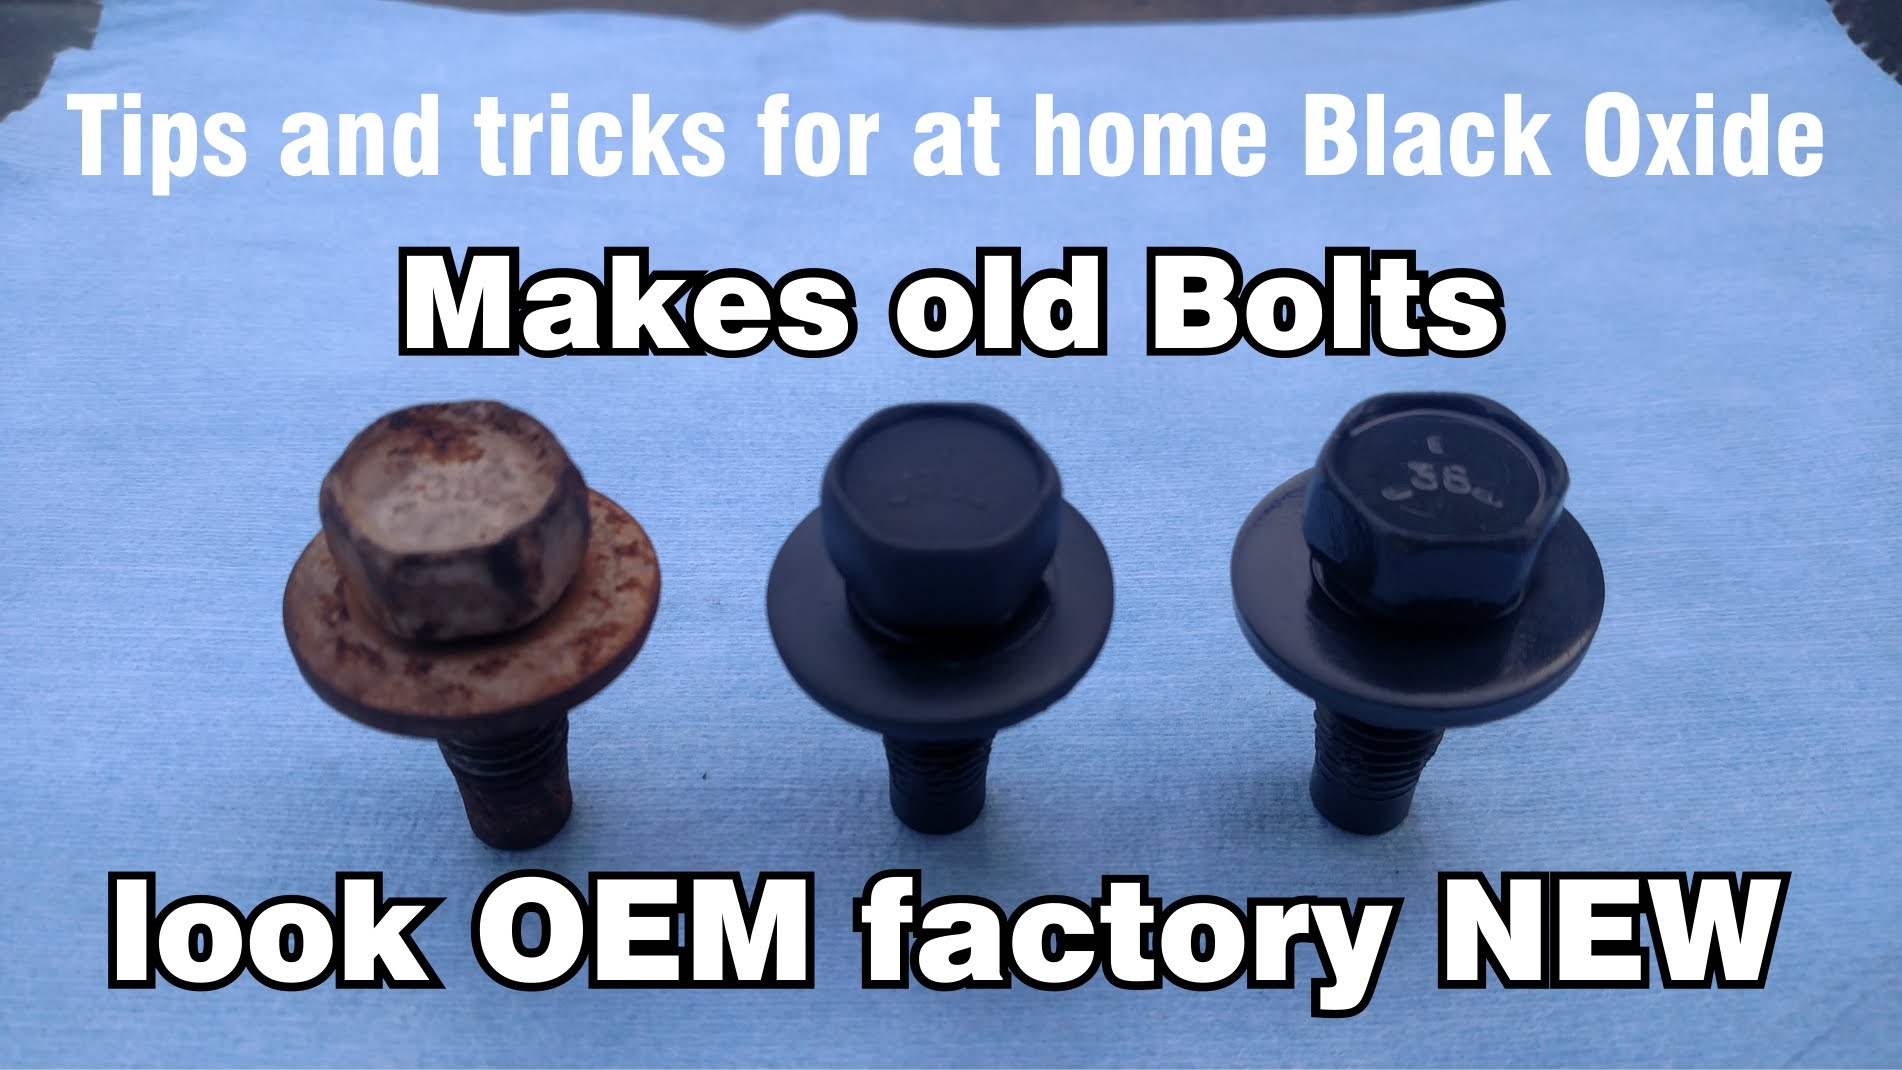 DIY at home original Black Oxide Phosphate OEM Restoration of nuts & bolts